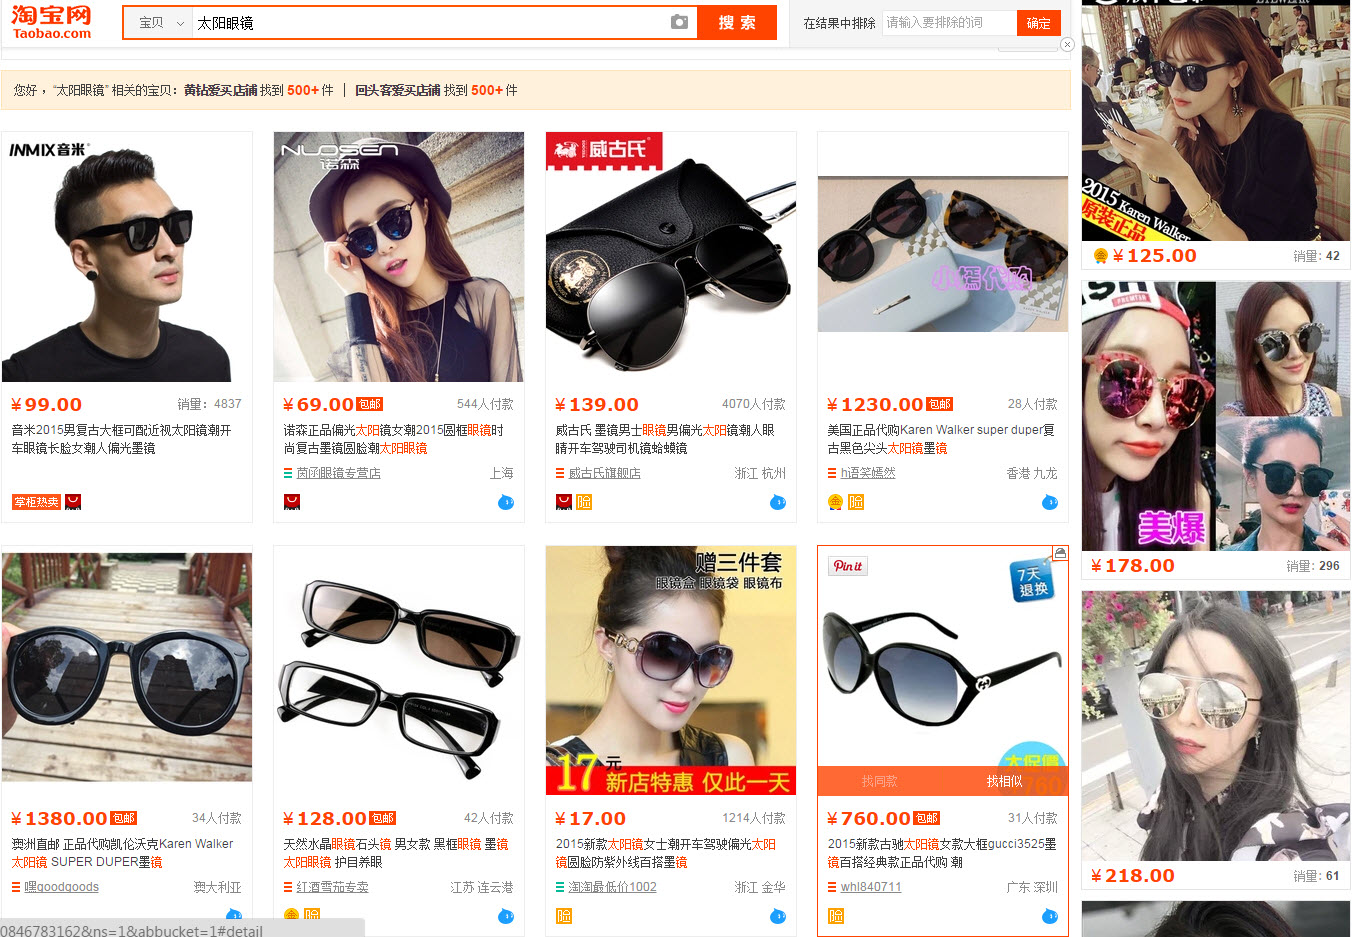 Chinese marketplace sites taobao search results